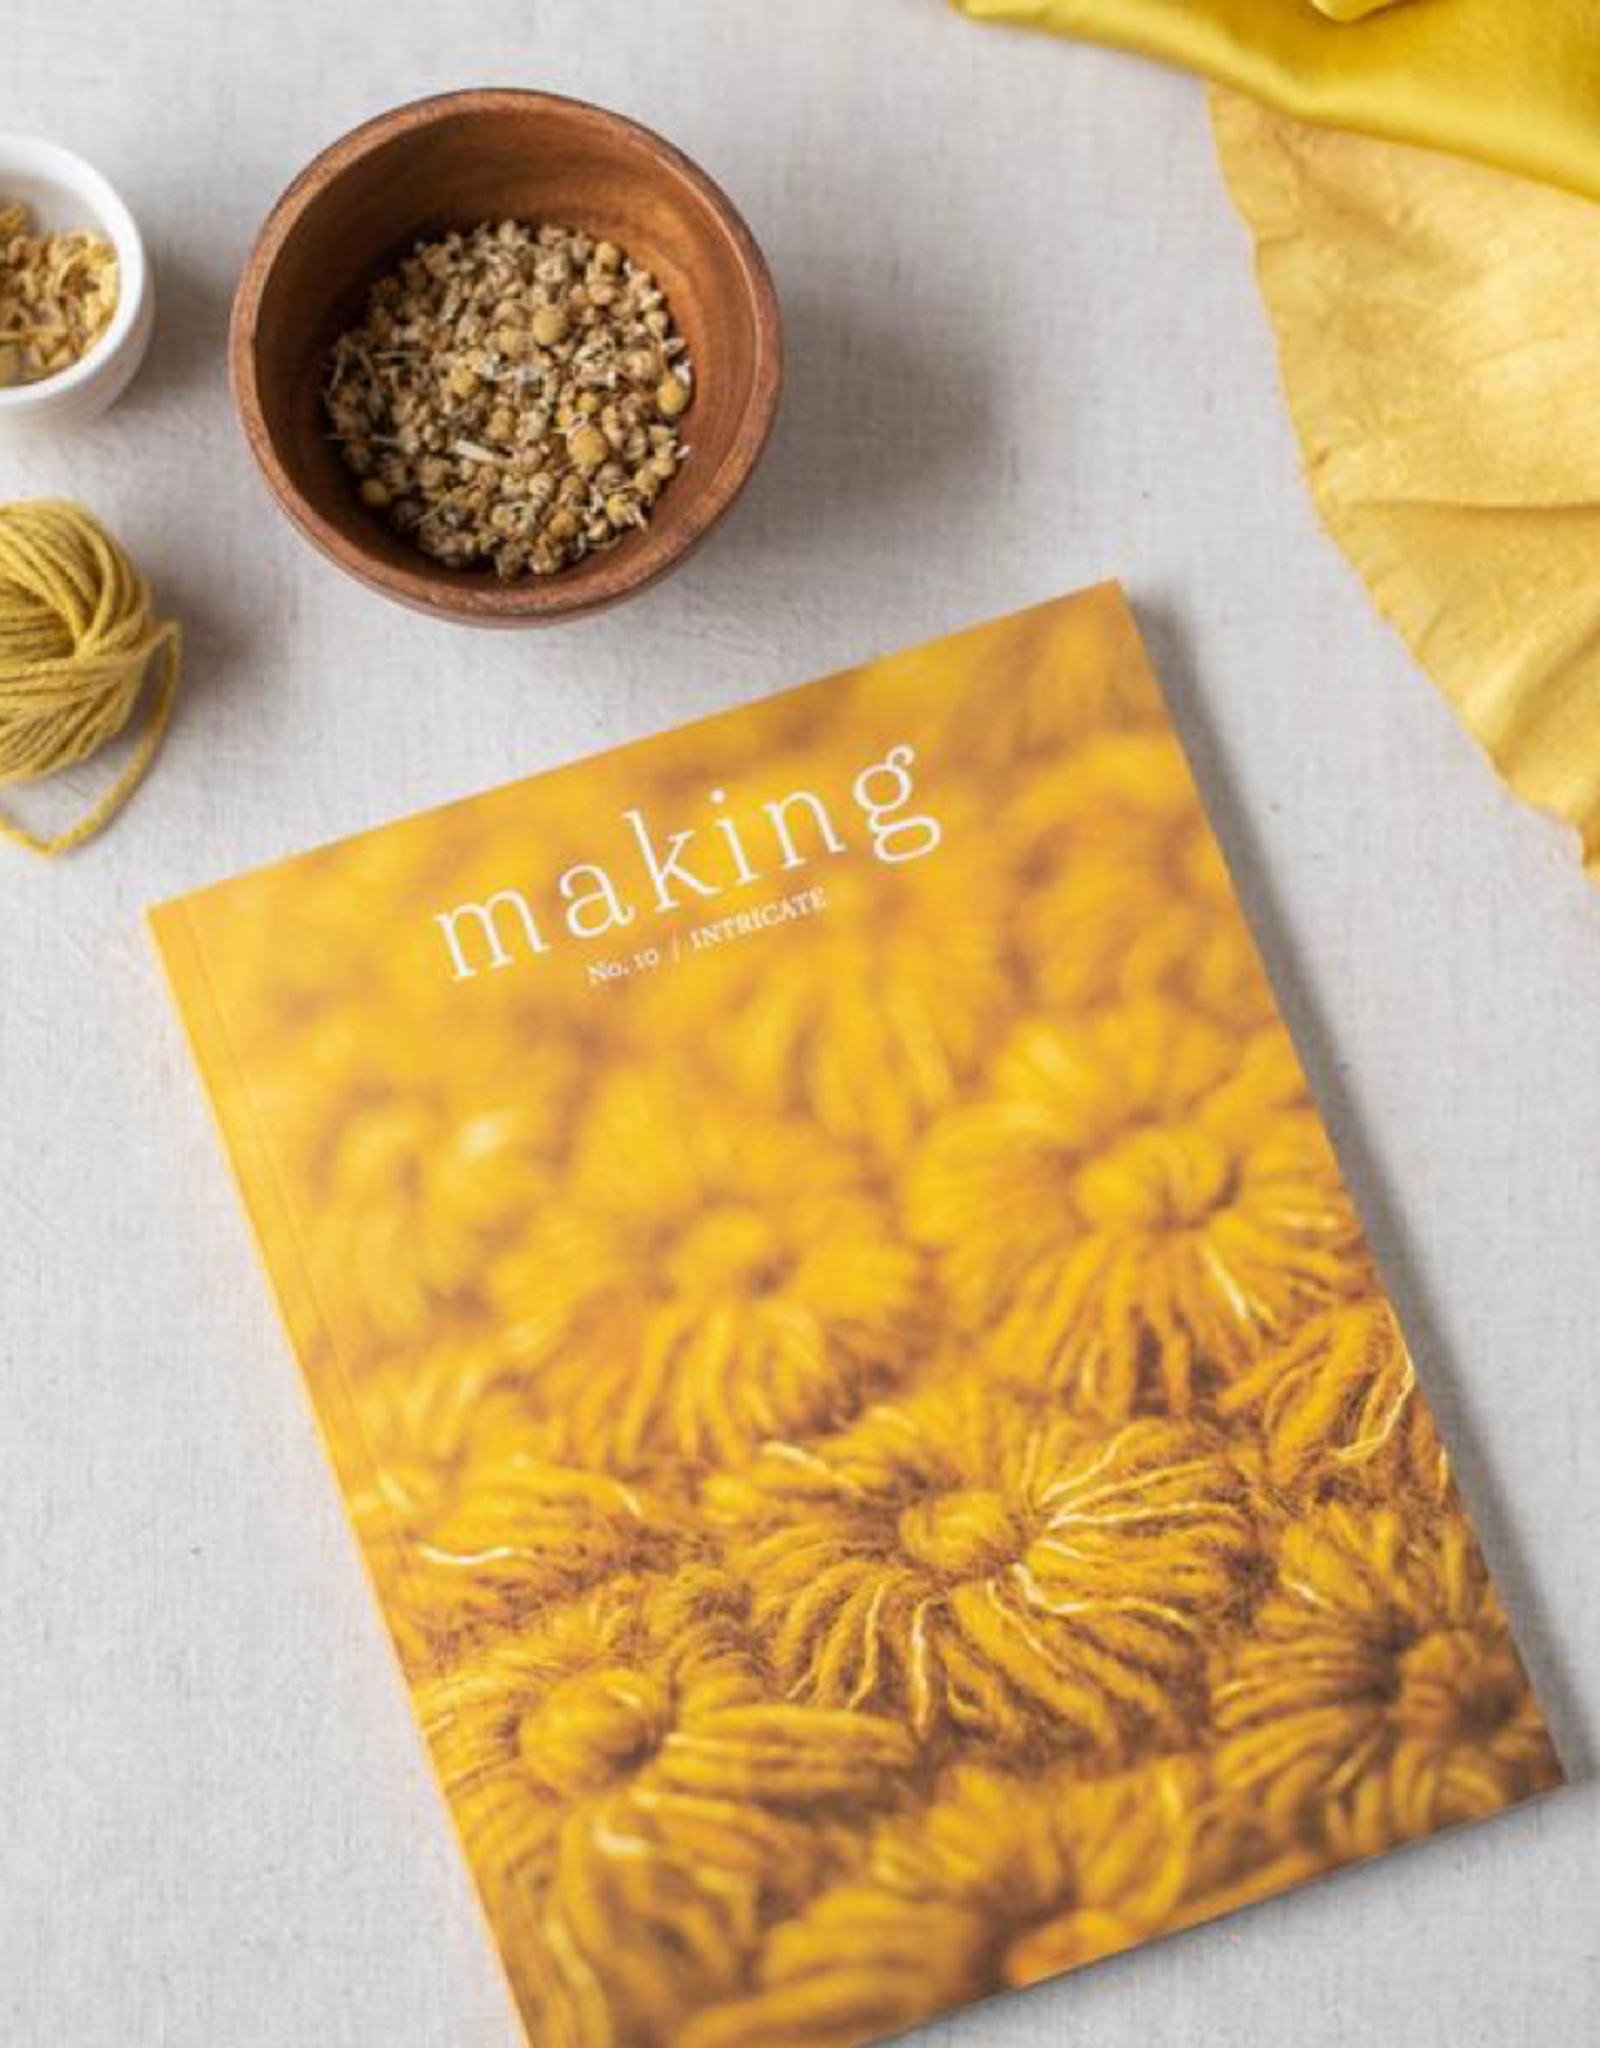 Making Stories Making Magazine